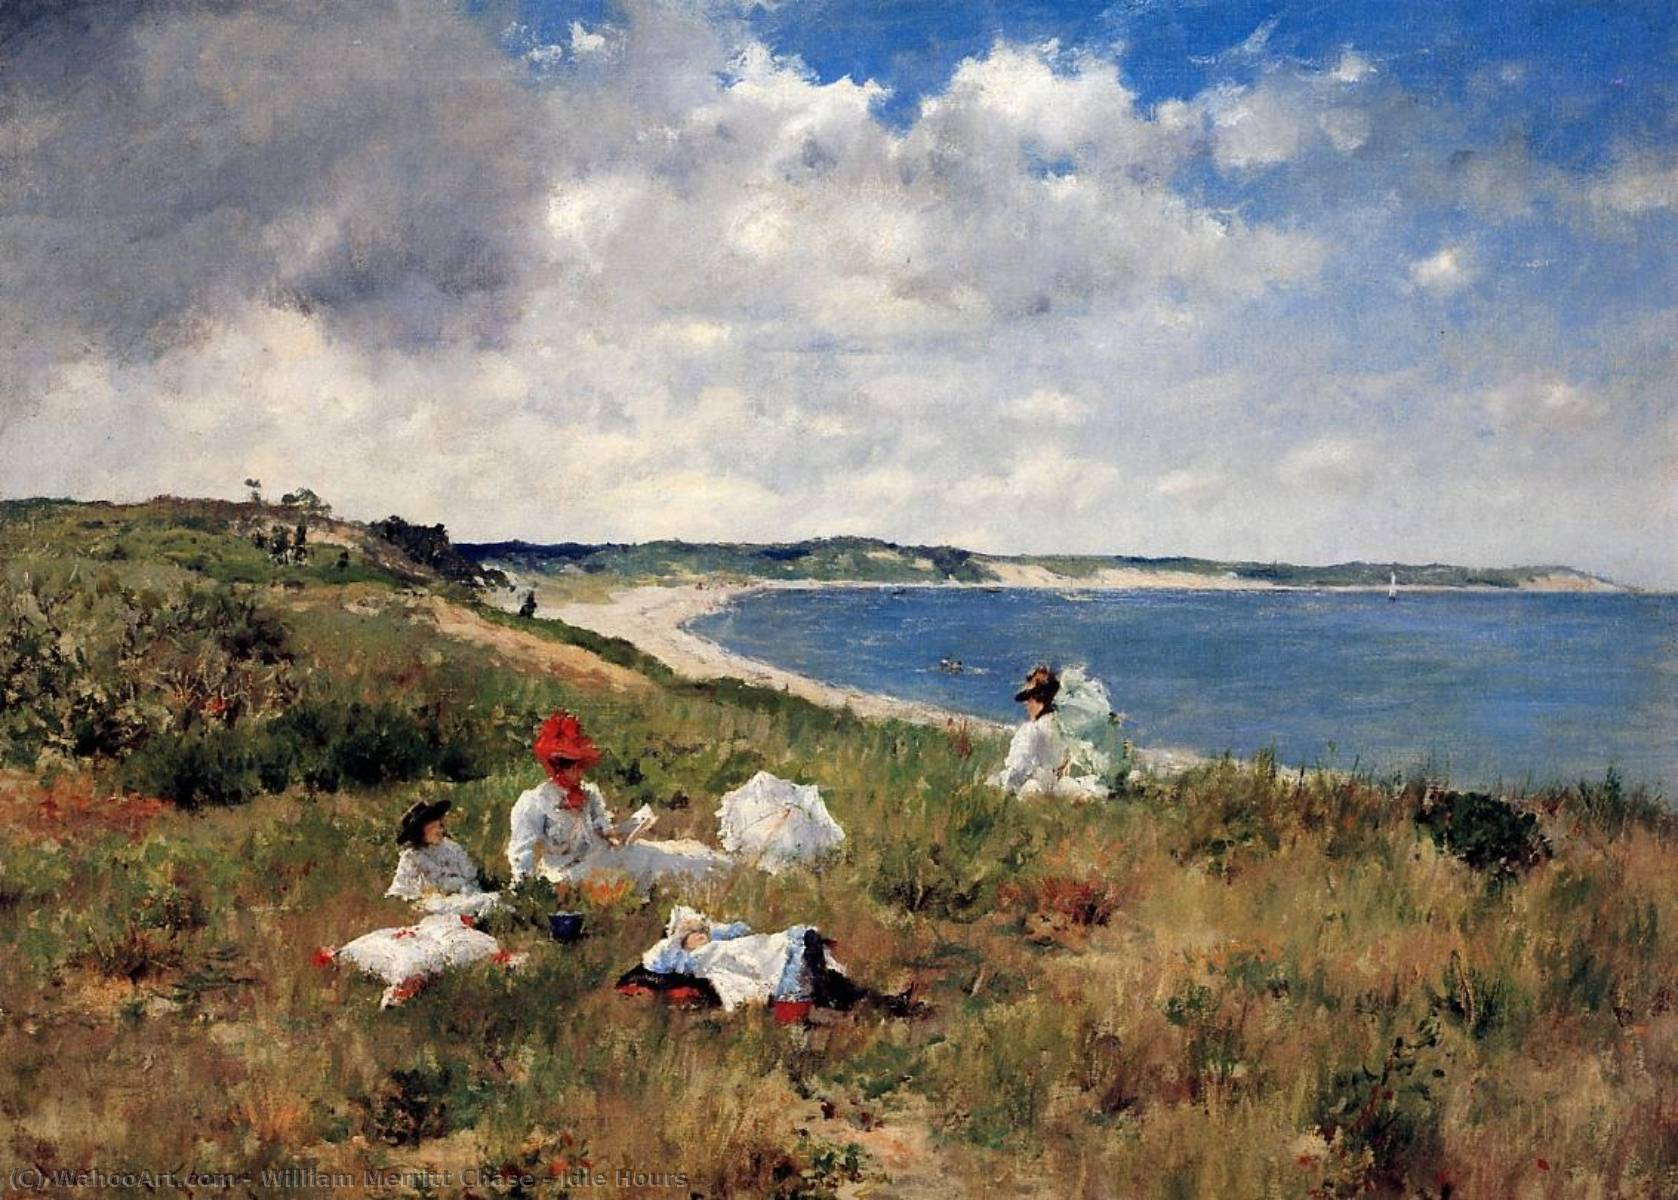 Idle Hours, Oil On Canvas by William Merritt Chase (1849-1916, United States)